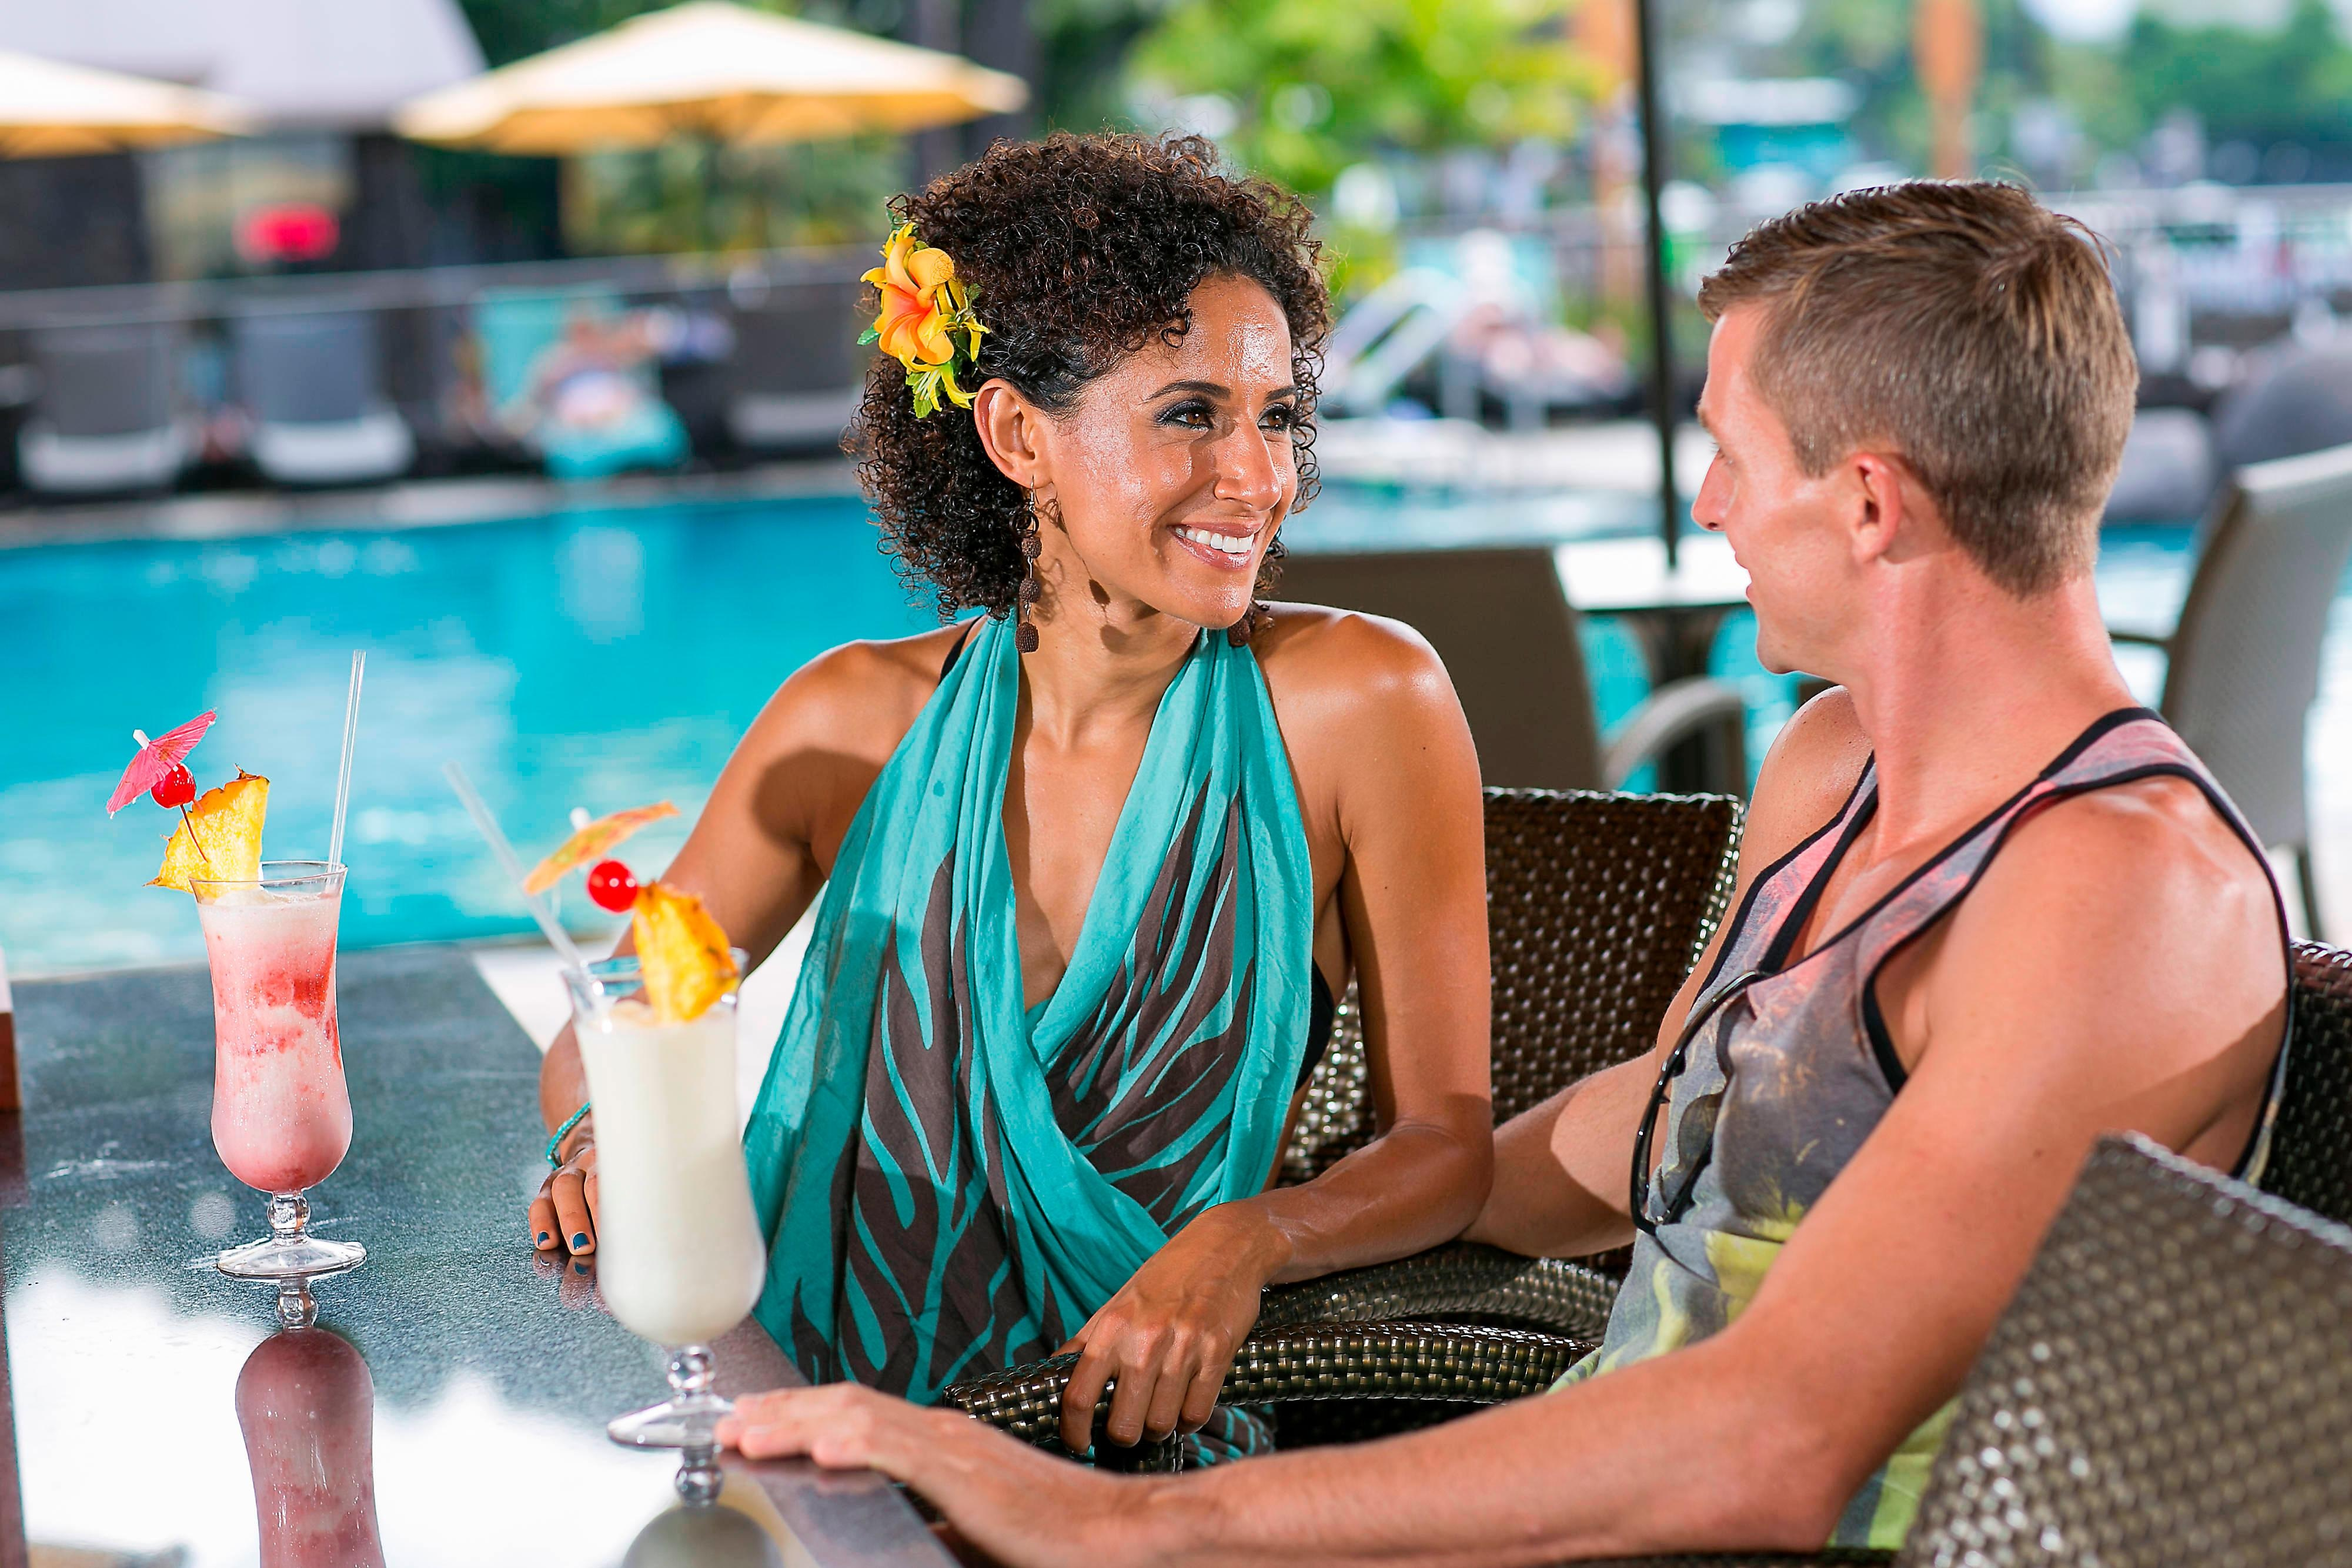 Billfish Poolside Bar Tropical Drinks